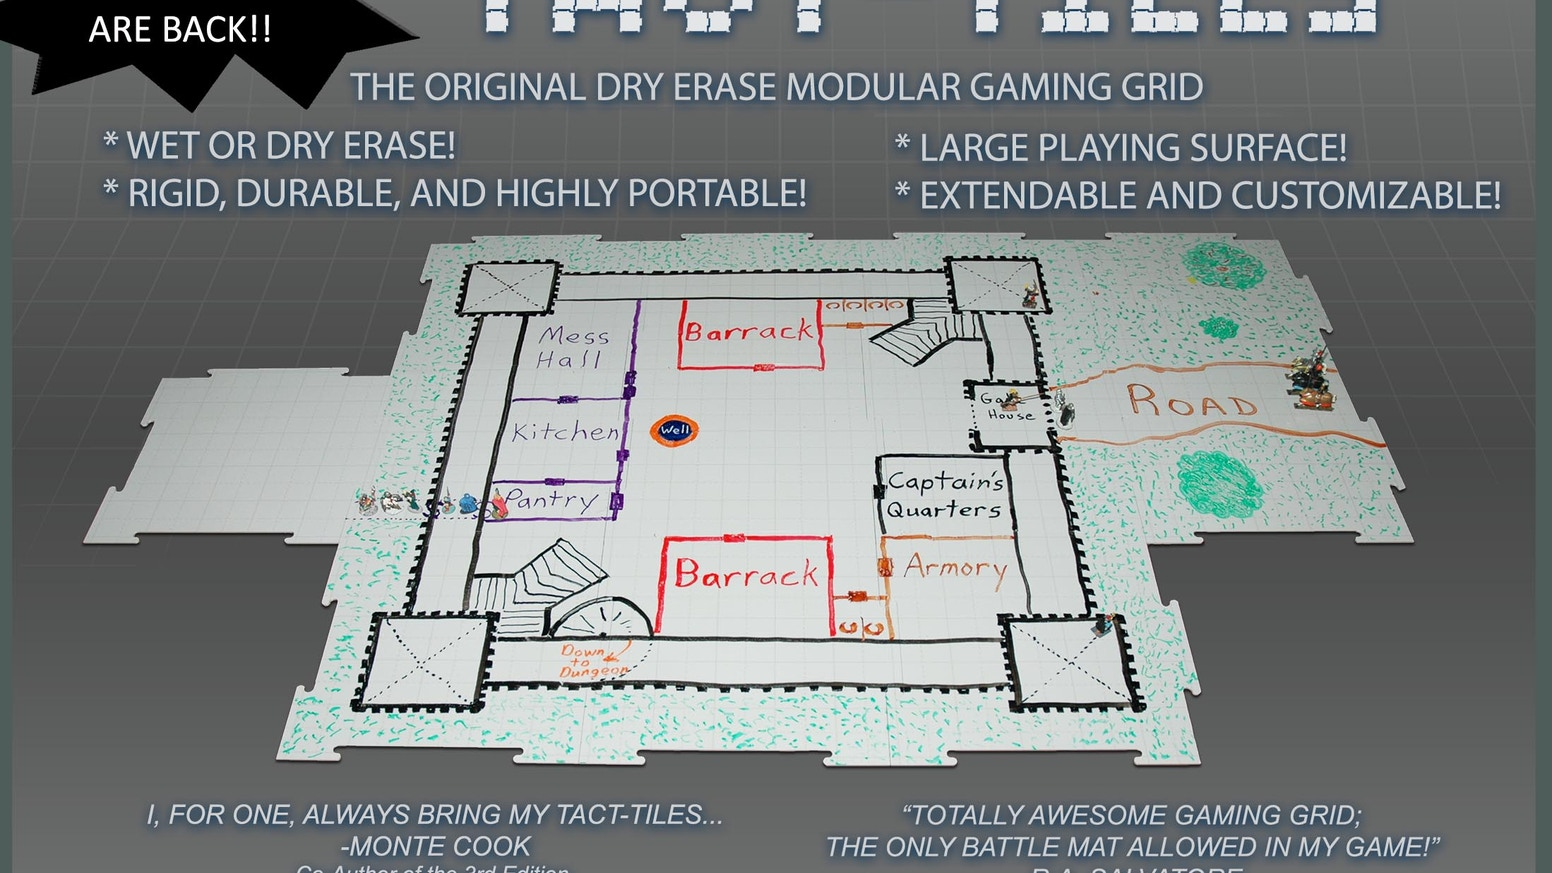 The Original Modular Expandable Versatile Wet And Dry Erase Gaming Surface For Miniatures